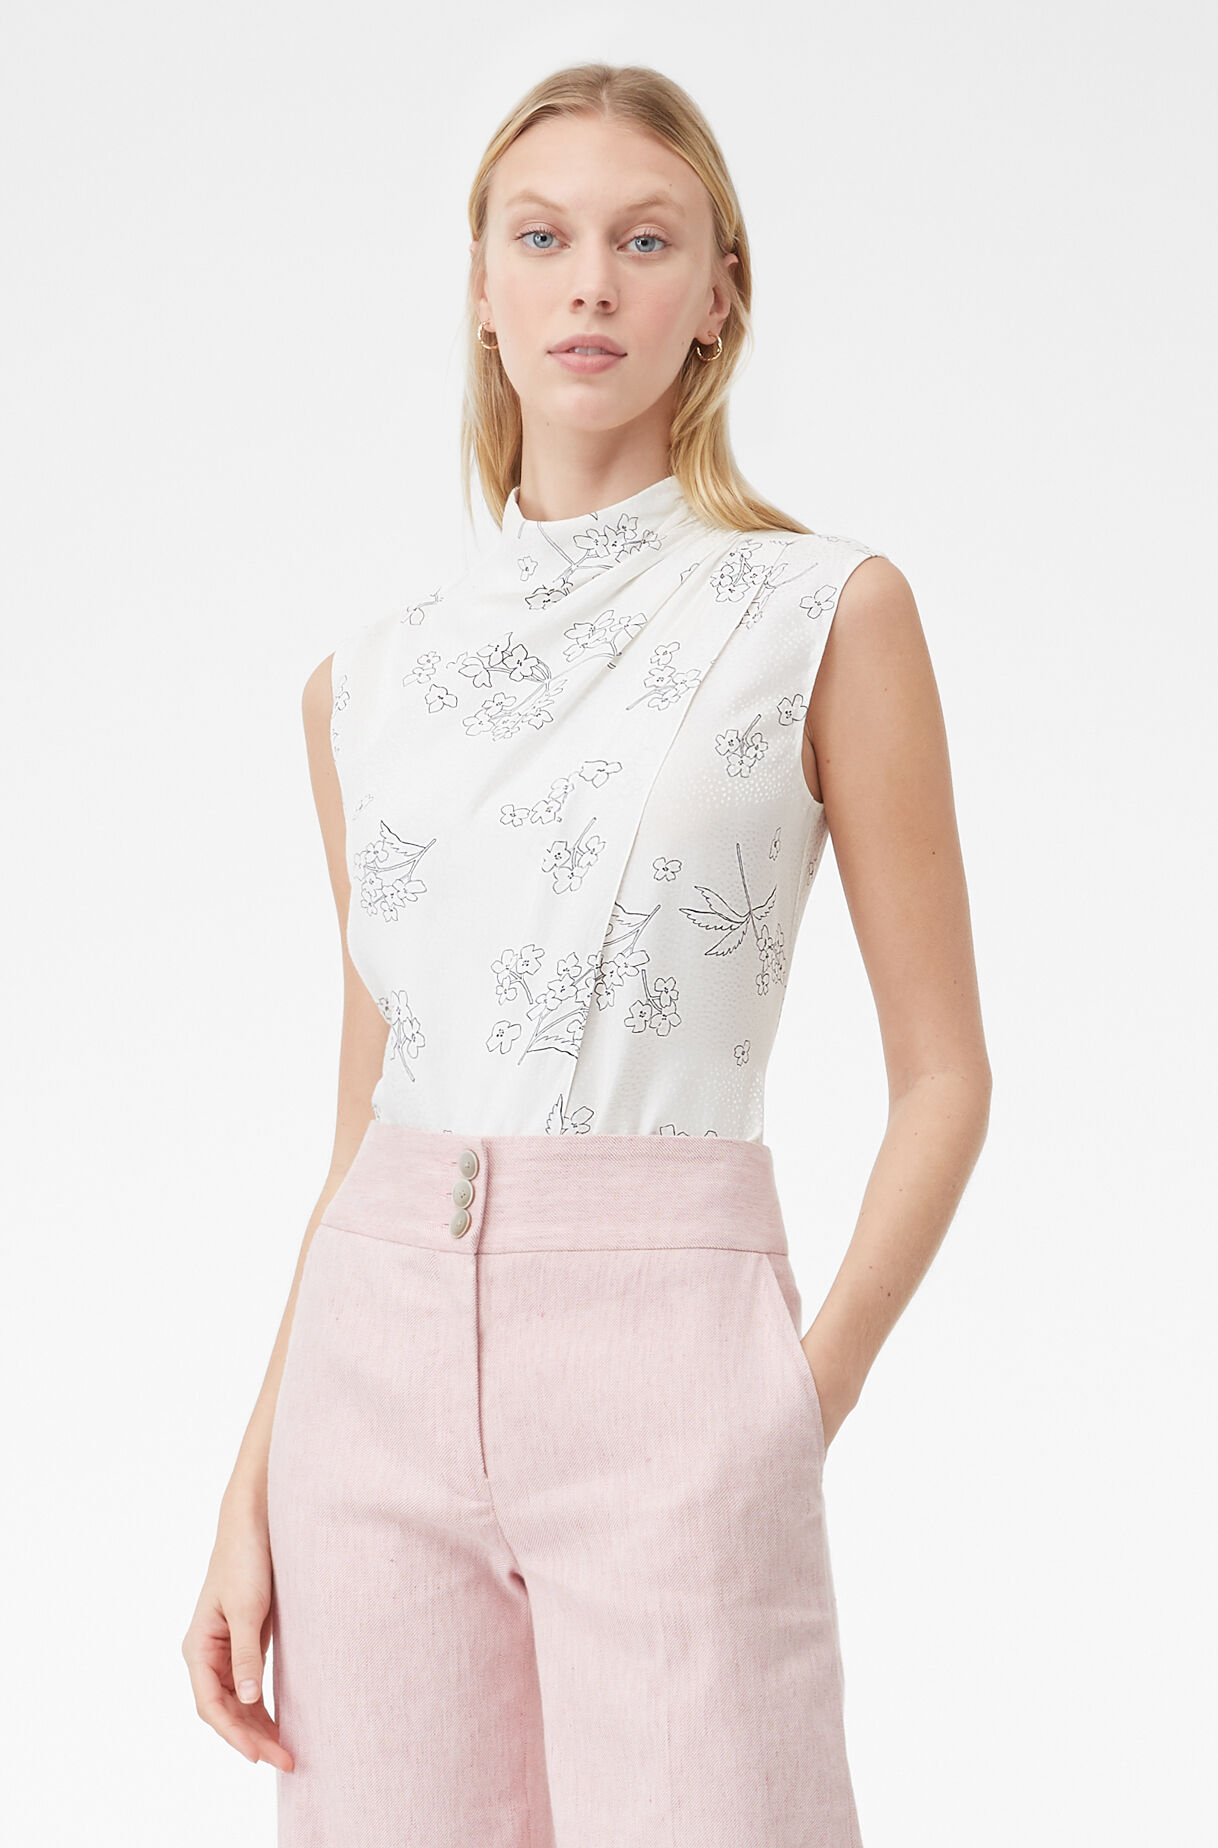 Tailored Silhouette Floral Top, , large